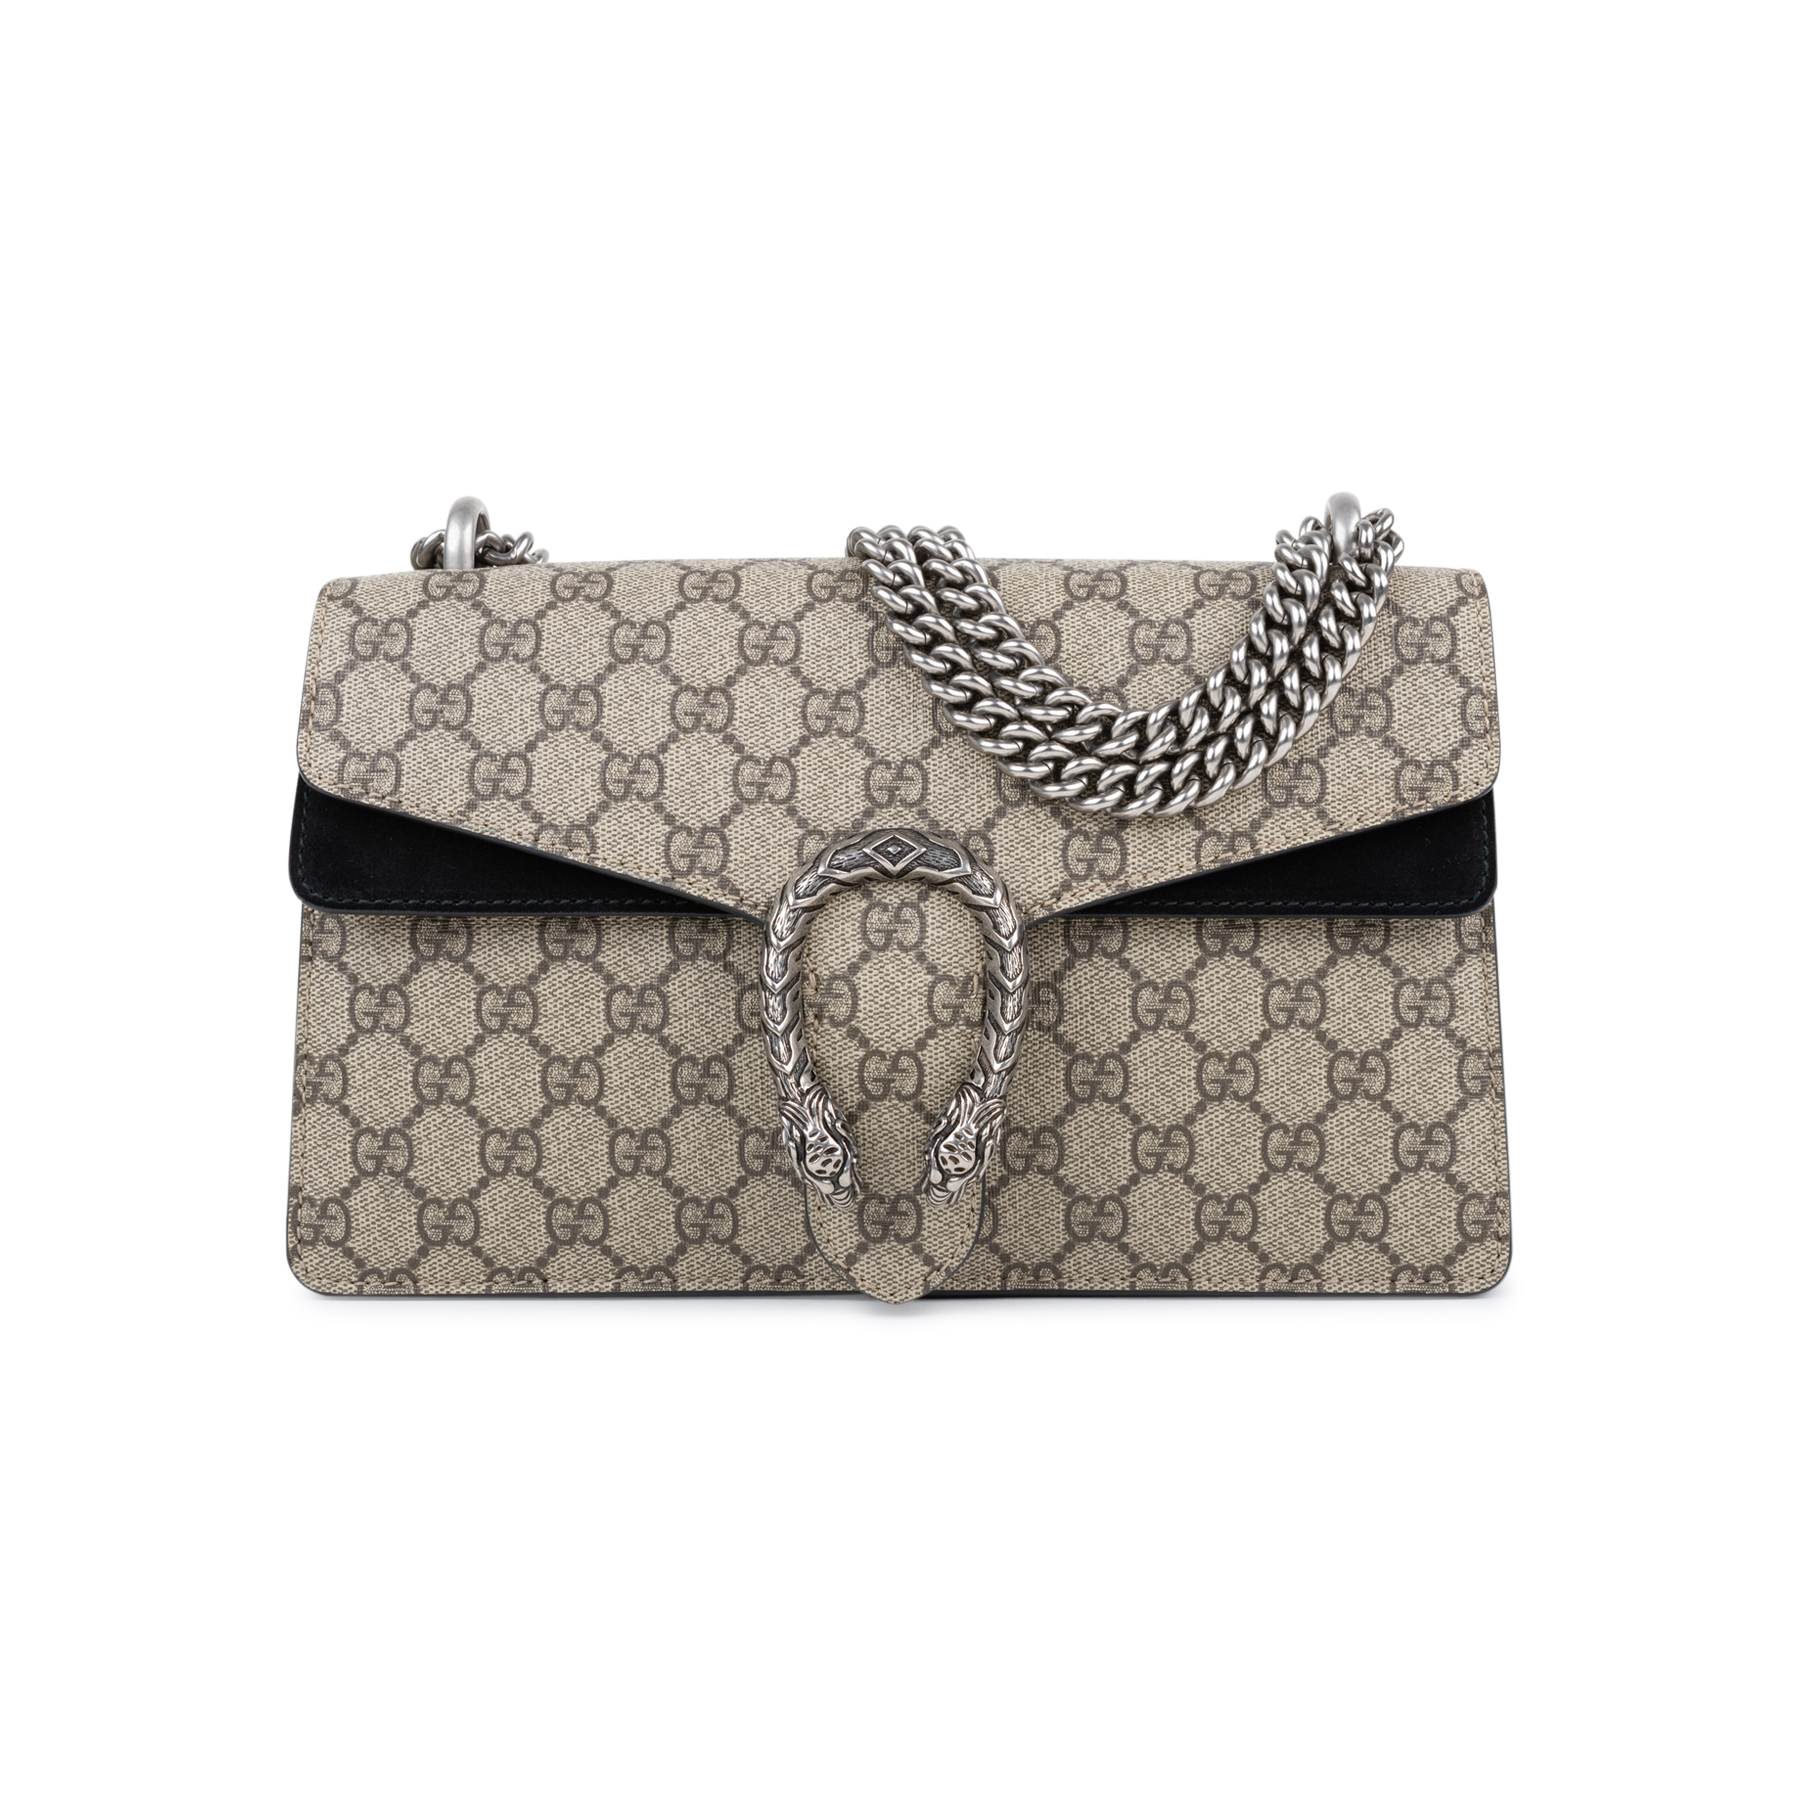 9409e1dfed74 Authentic Second Hand Gucci Dionysus GG Supreme Medium Bag (PSS-588-00010)  | THE FIFTH COLLECTION